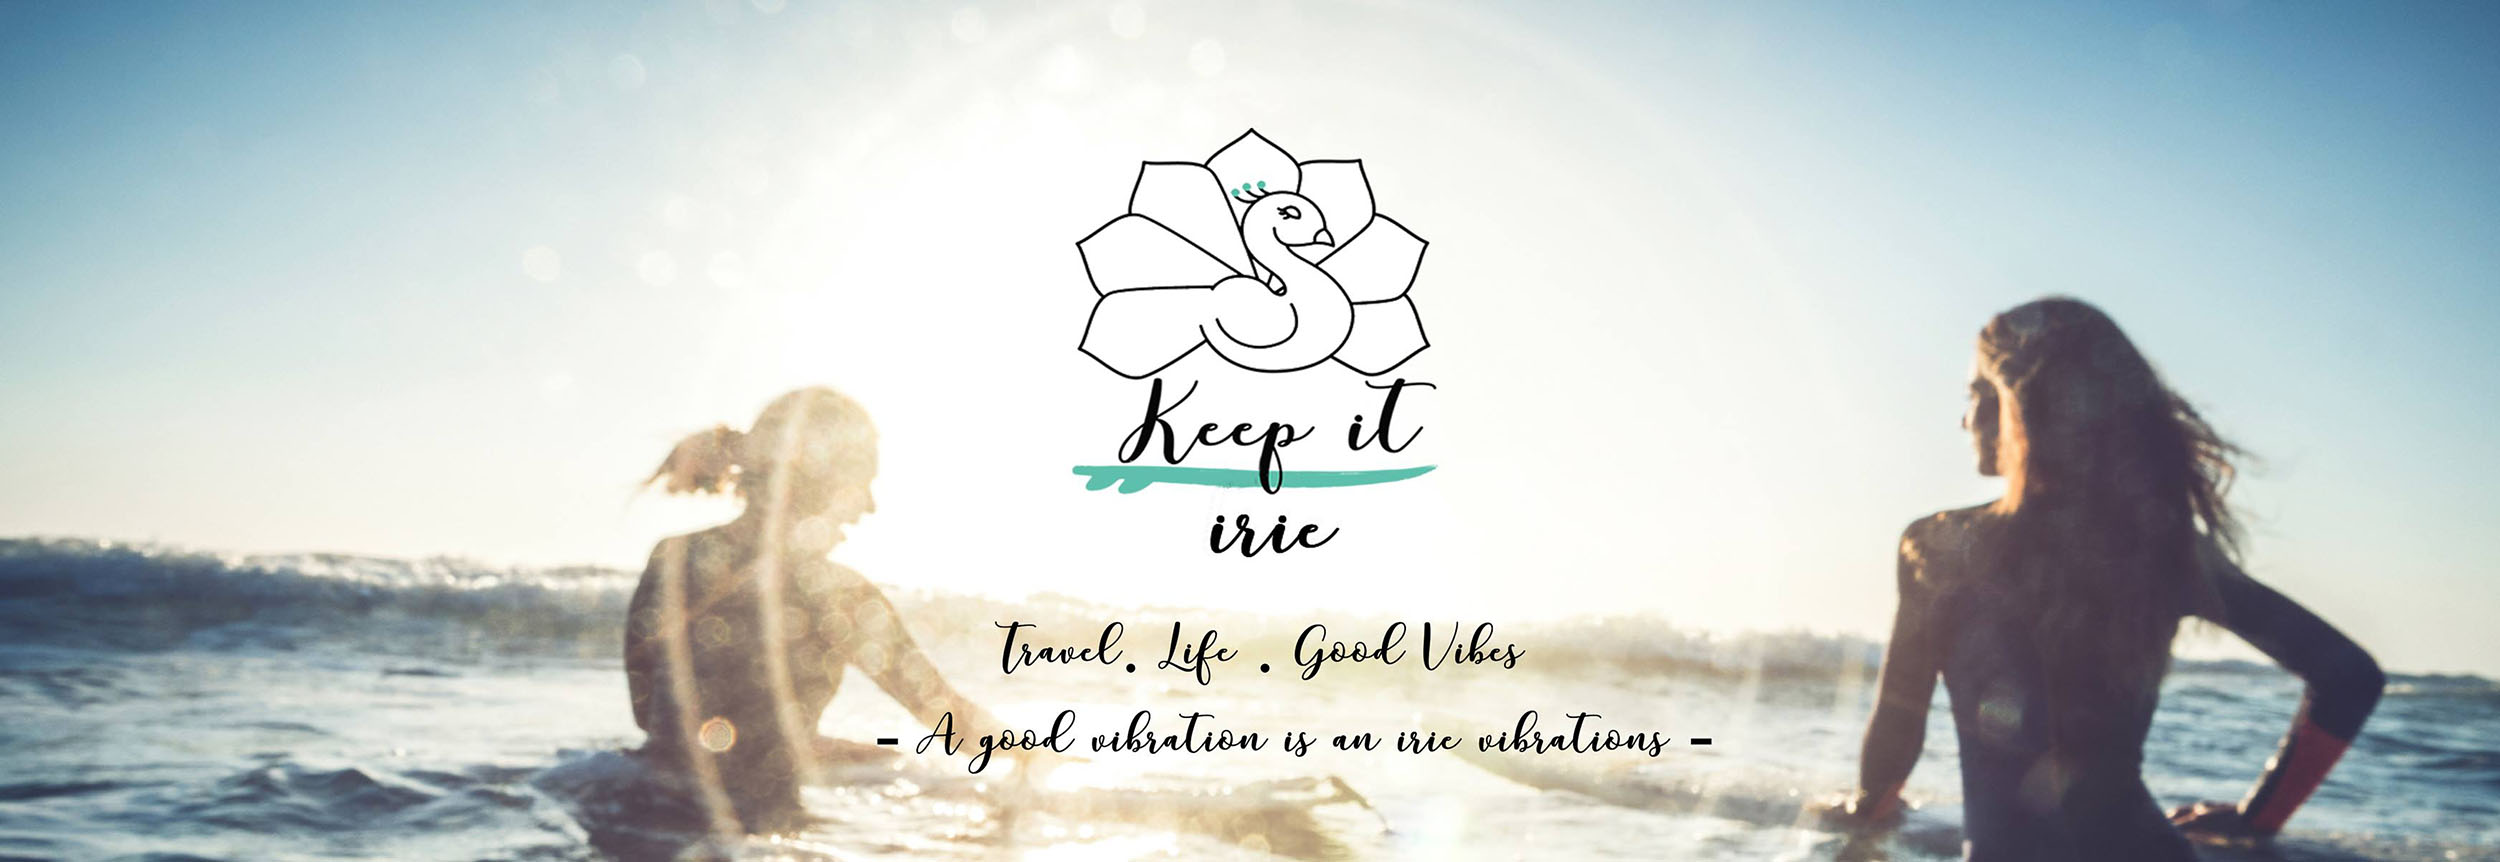 Keep It Irie Blog